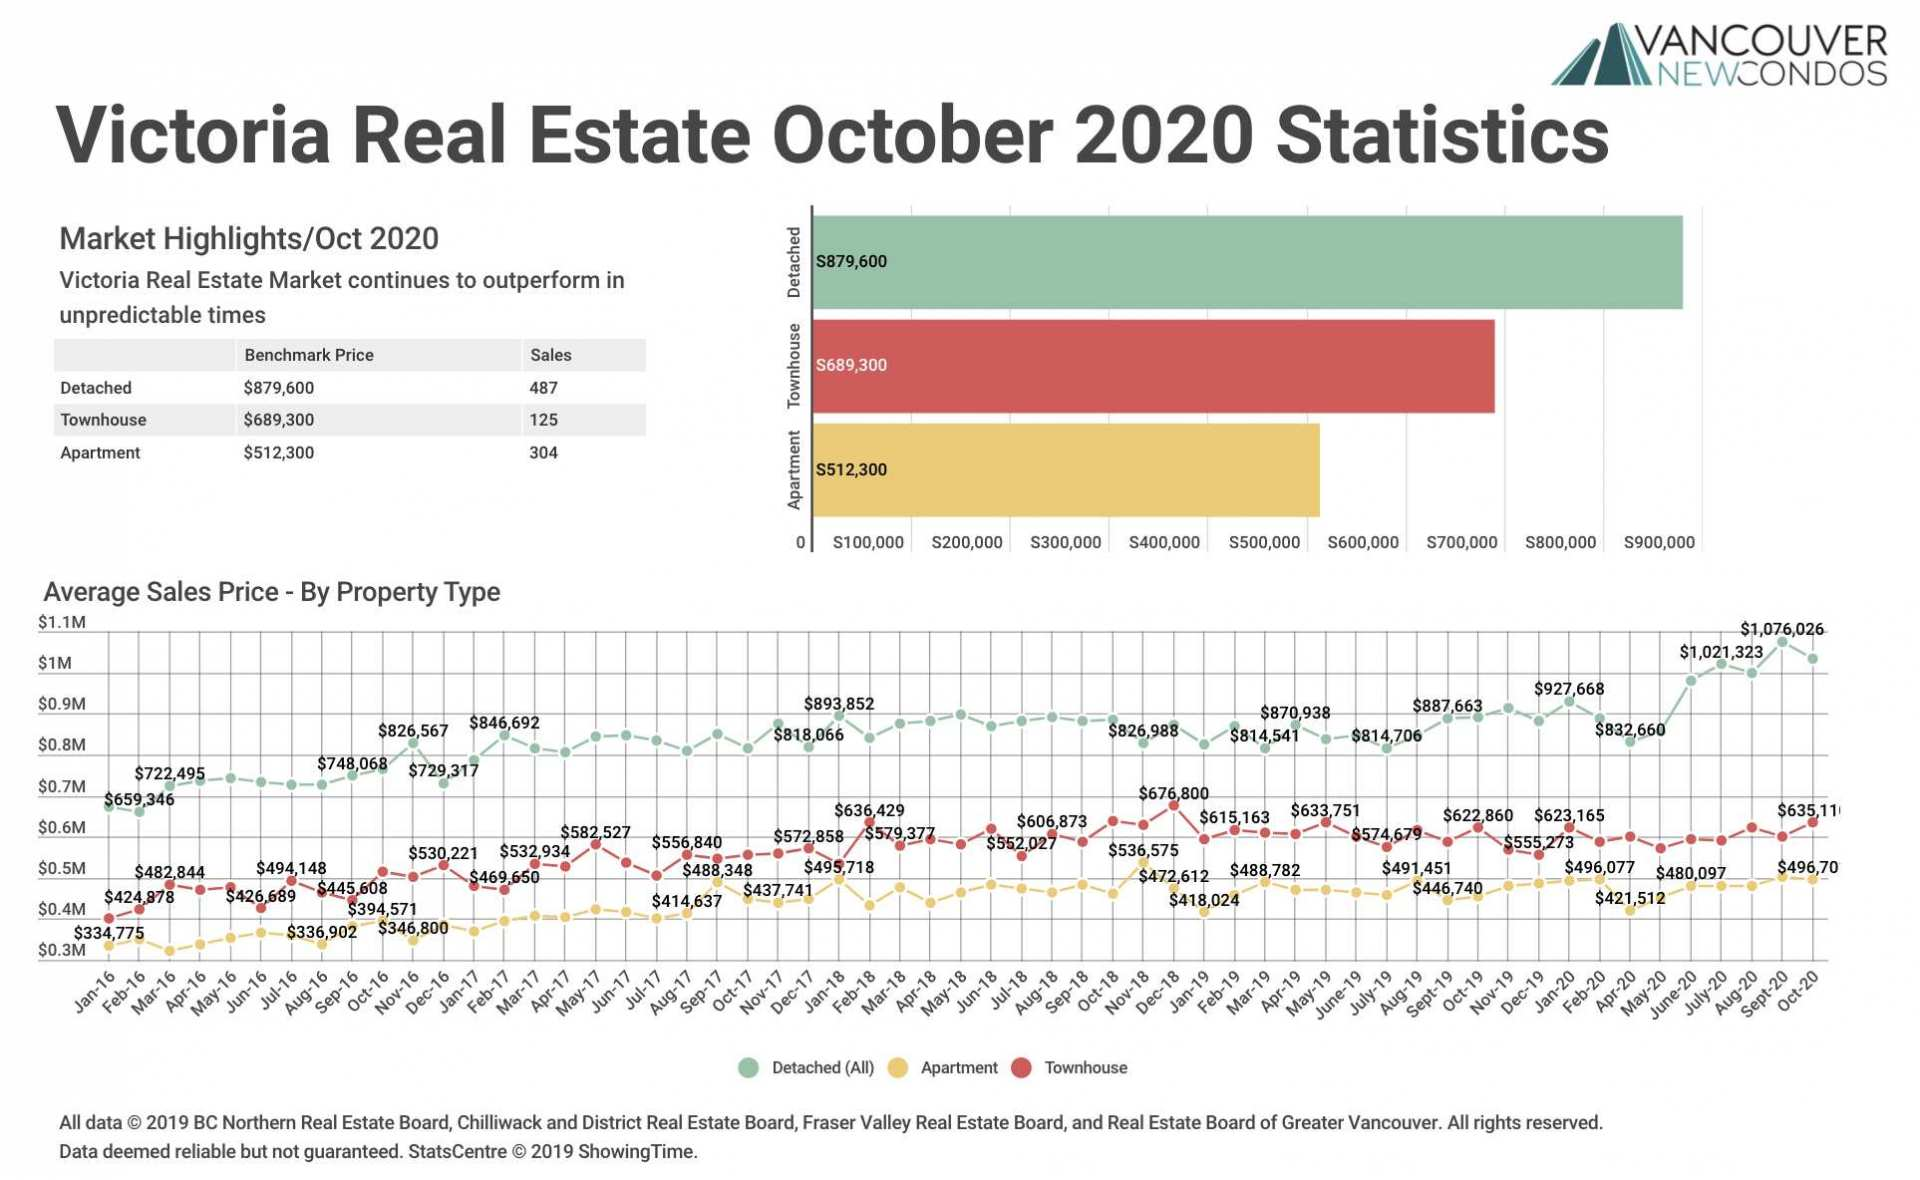 VREB Oct 20 Stats Graph